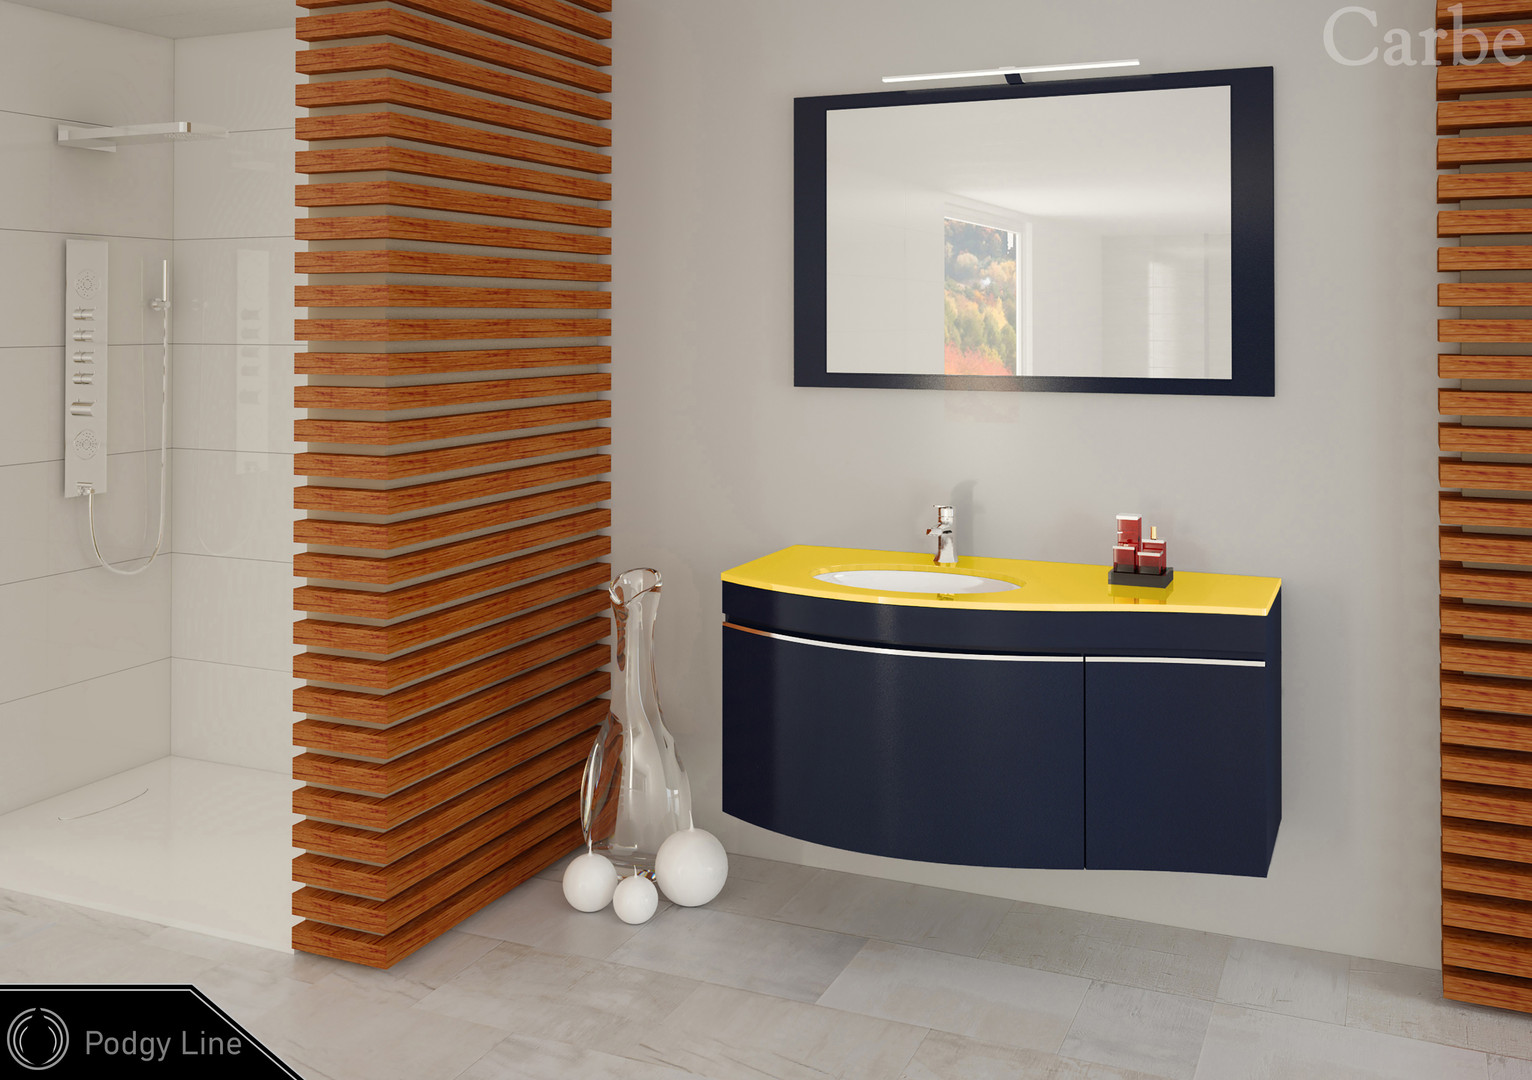 PodgyLine - Nightblue, Glass Top - Yellow, Ceramic Washbasin, Soft Closing